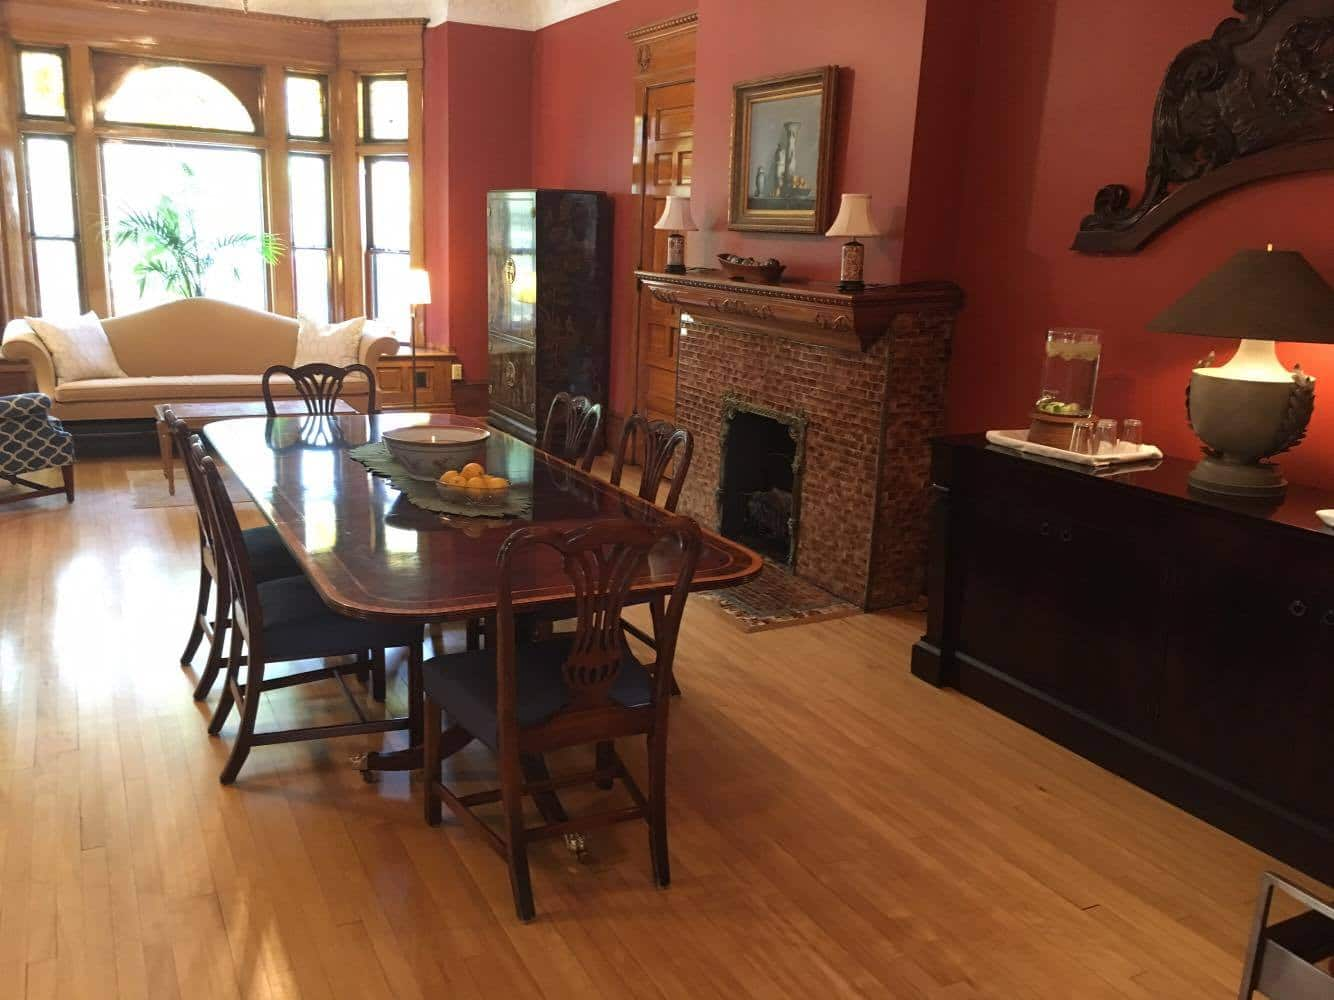 The Breakfast Room of Castle La Crosse Bed and Breakfast. Join Us!